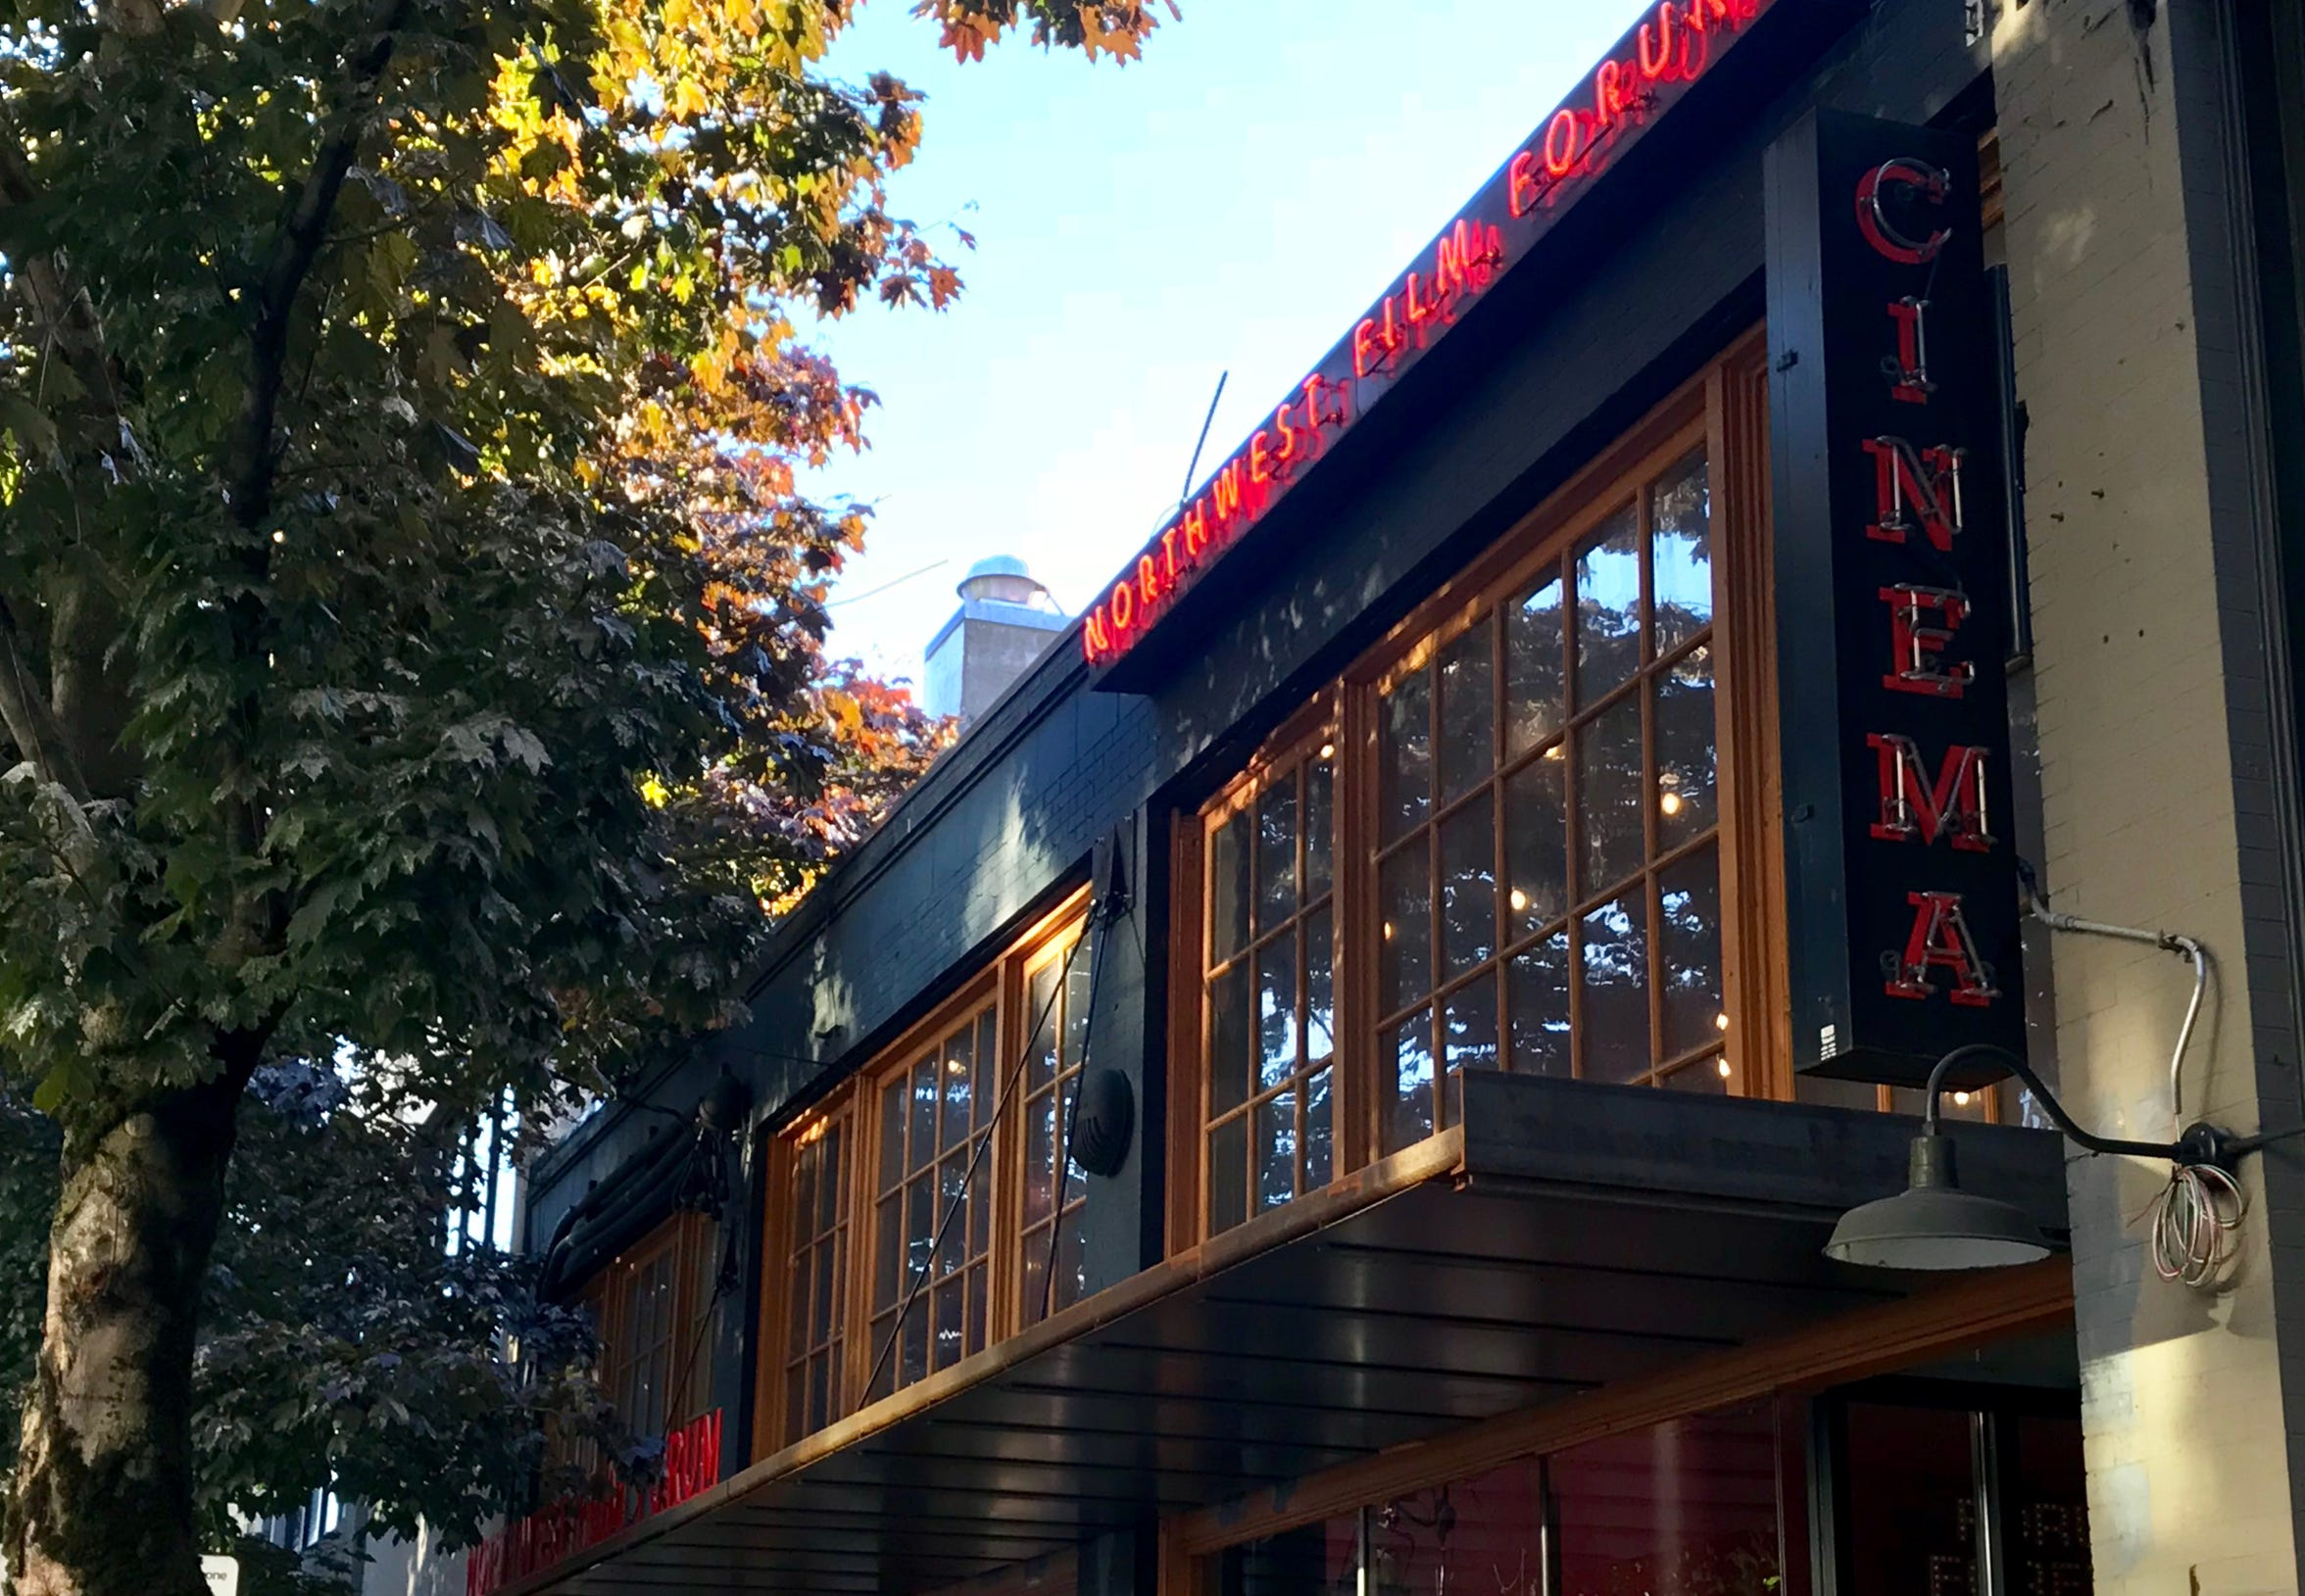 The Northwest Film Forum offers classic and indie movies along with live performances, filmmaking classes and gear rentals — plus a vibrant crowd of filmophiles dropping in for a screening at any given time.